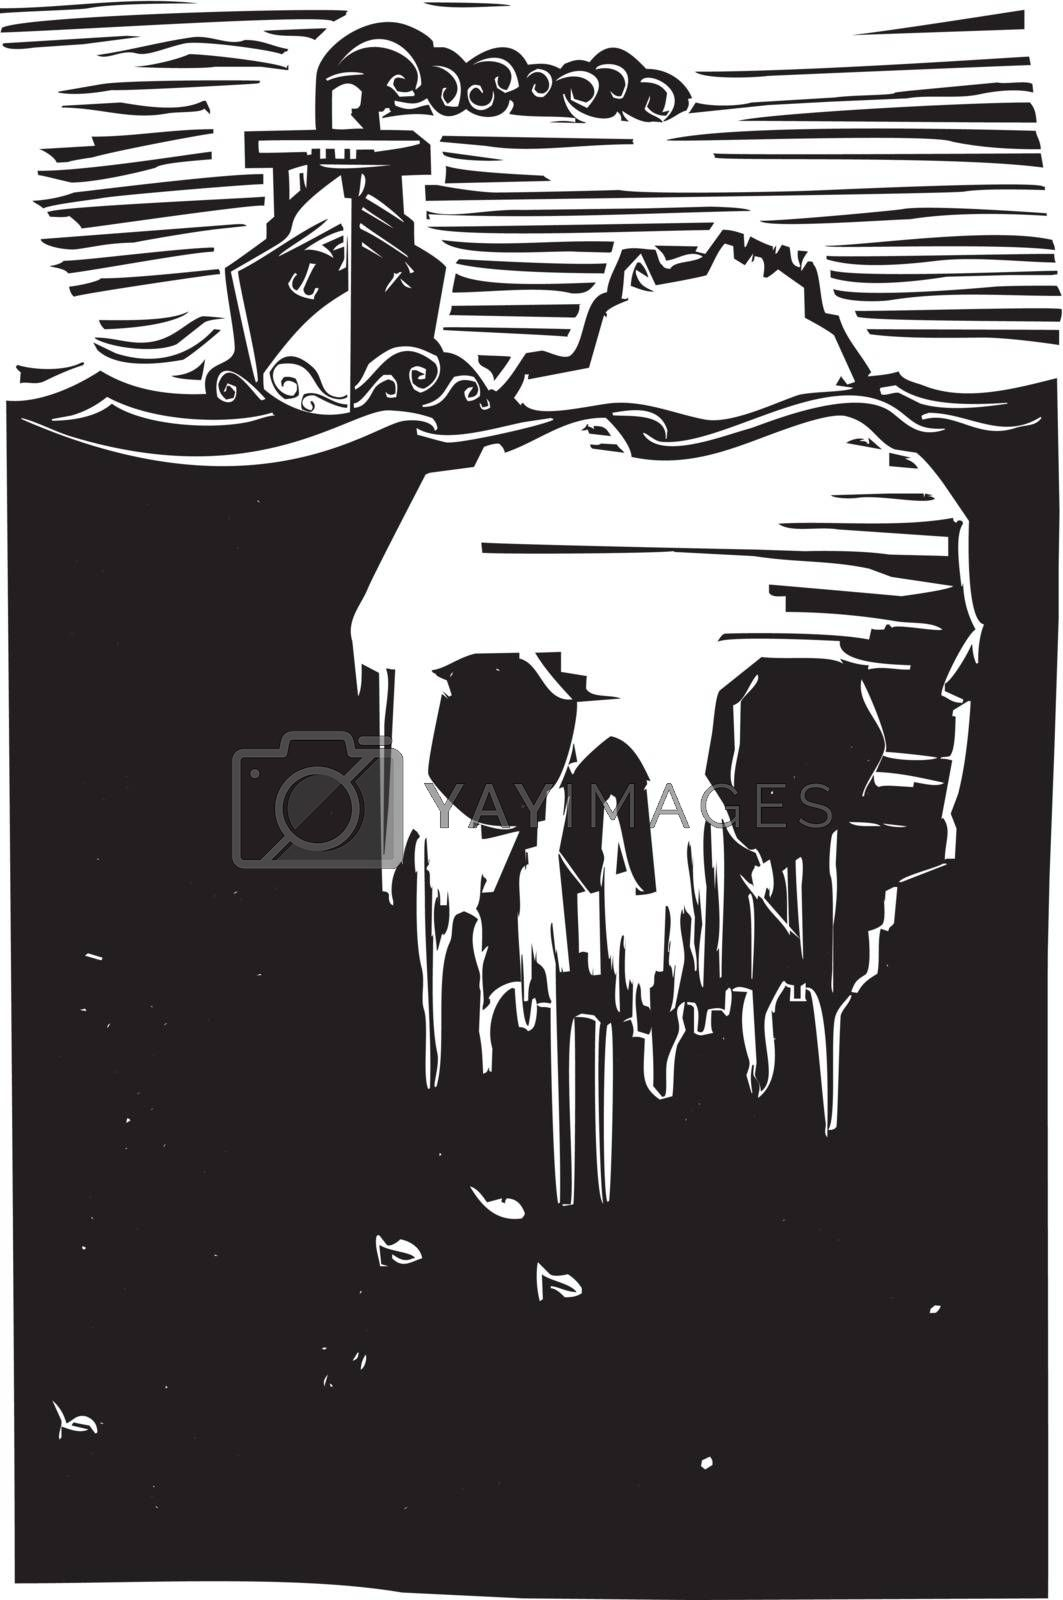 Woodcut style image of a steam ship approaching an iceberg in the shape of a skull.